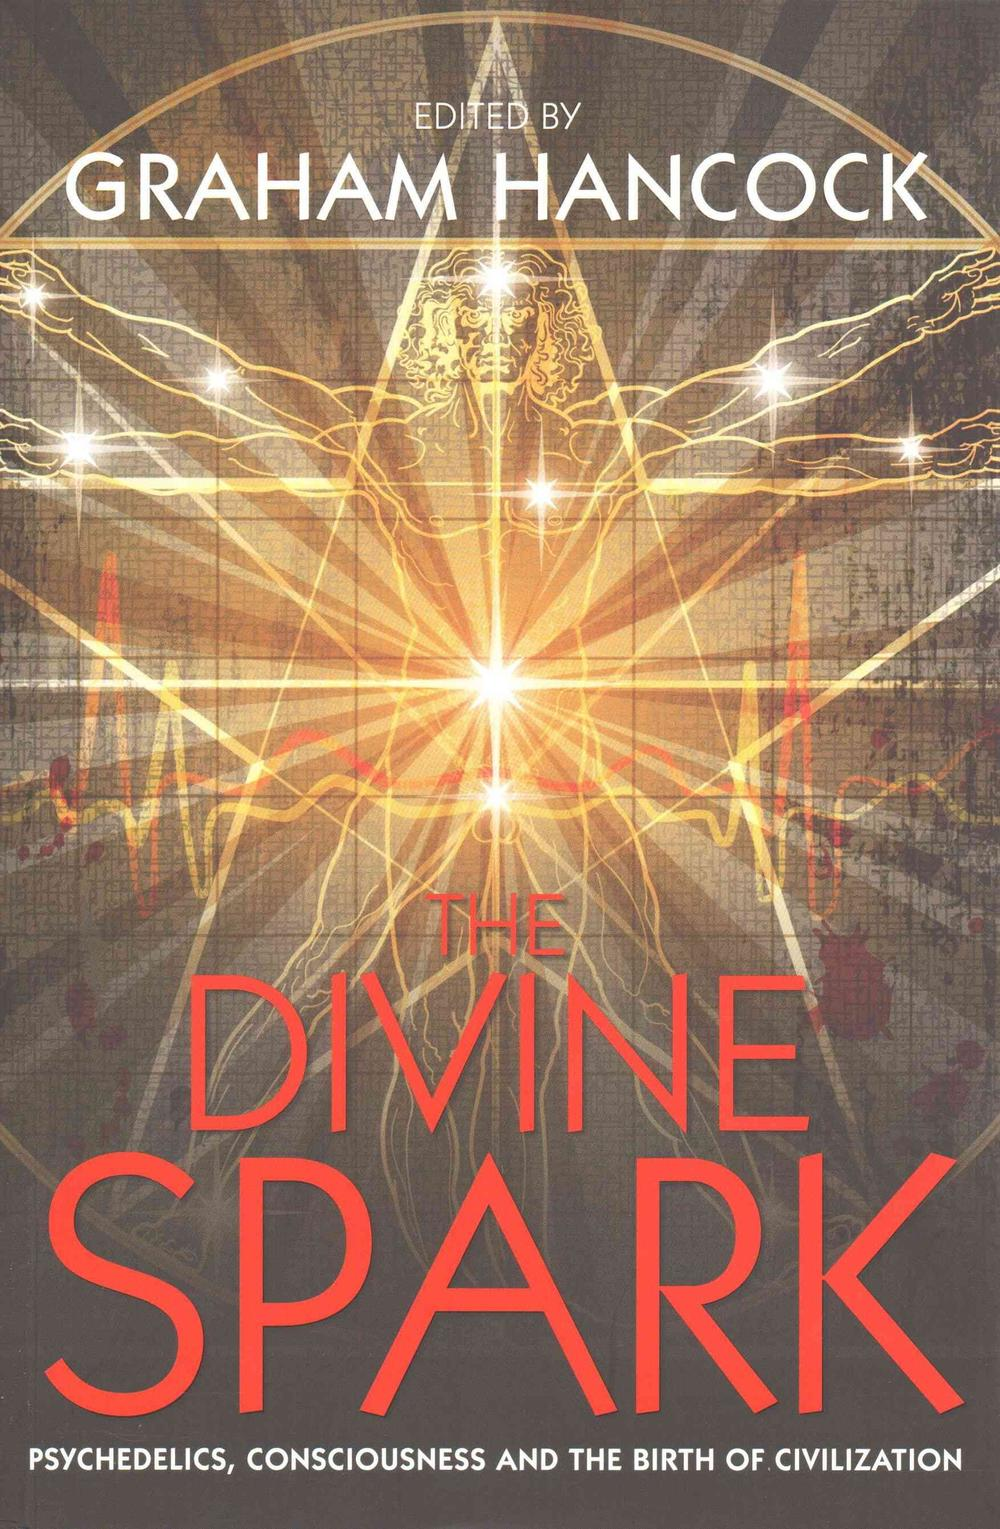 The Divine Spark: Psychedelics, Consciousness and the Birth of Civilization by Graham Hancock, ISBN: 9781781805626